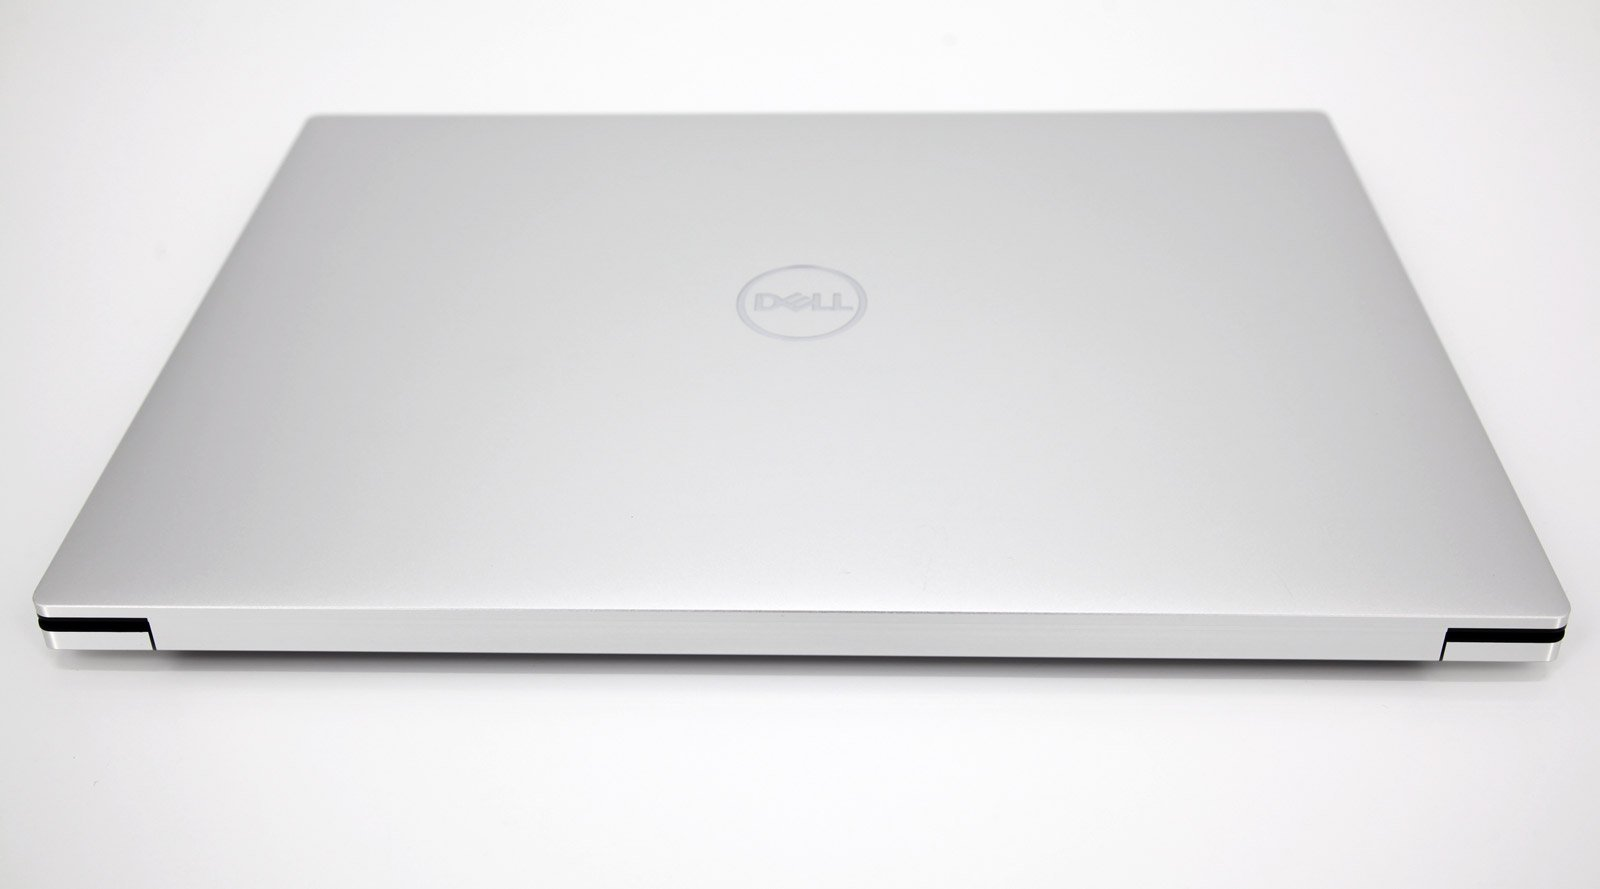 Dell XPS 15 9500 Laptop: Core i7-10750H, GTX 1650Ti, 512GB, 16GB RAM, Warranty - CruiseTech